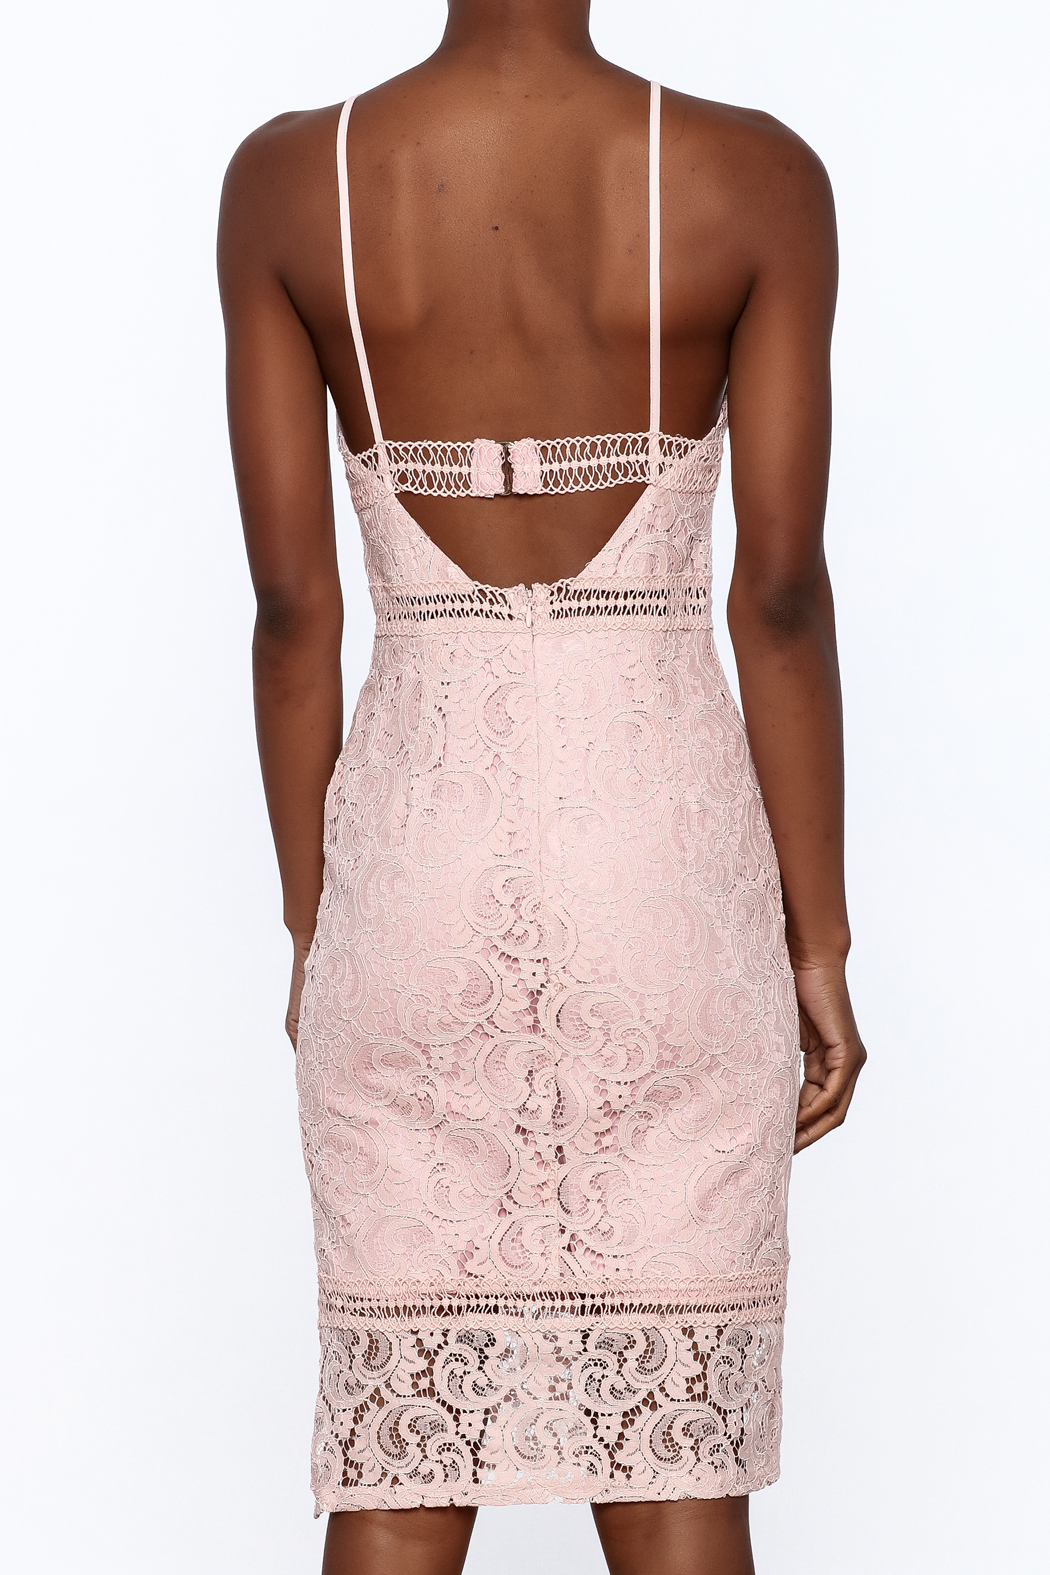 Sugar Lips Pink Lace Bodycon Dress from Manhattan by Dor L'Dor ...